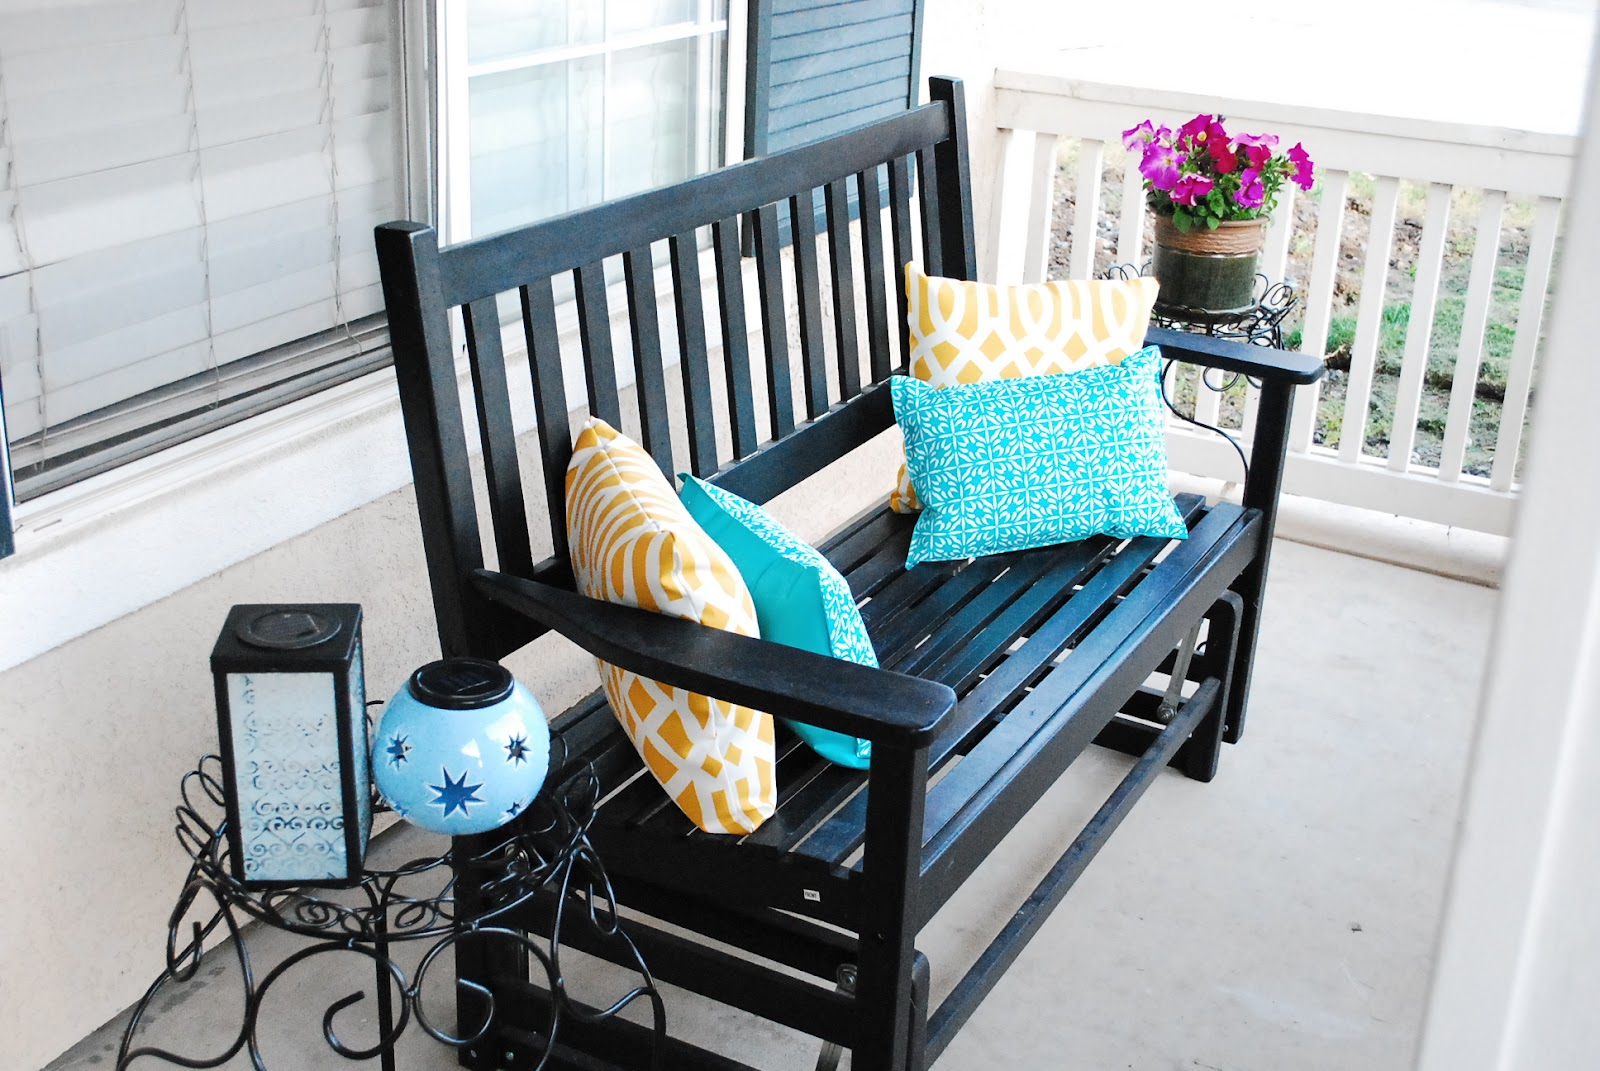 Patio makeover on a budget for Deck makeover on a budget